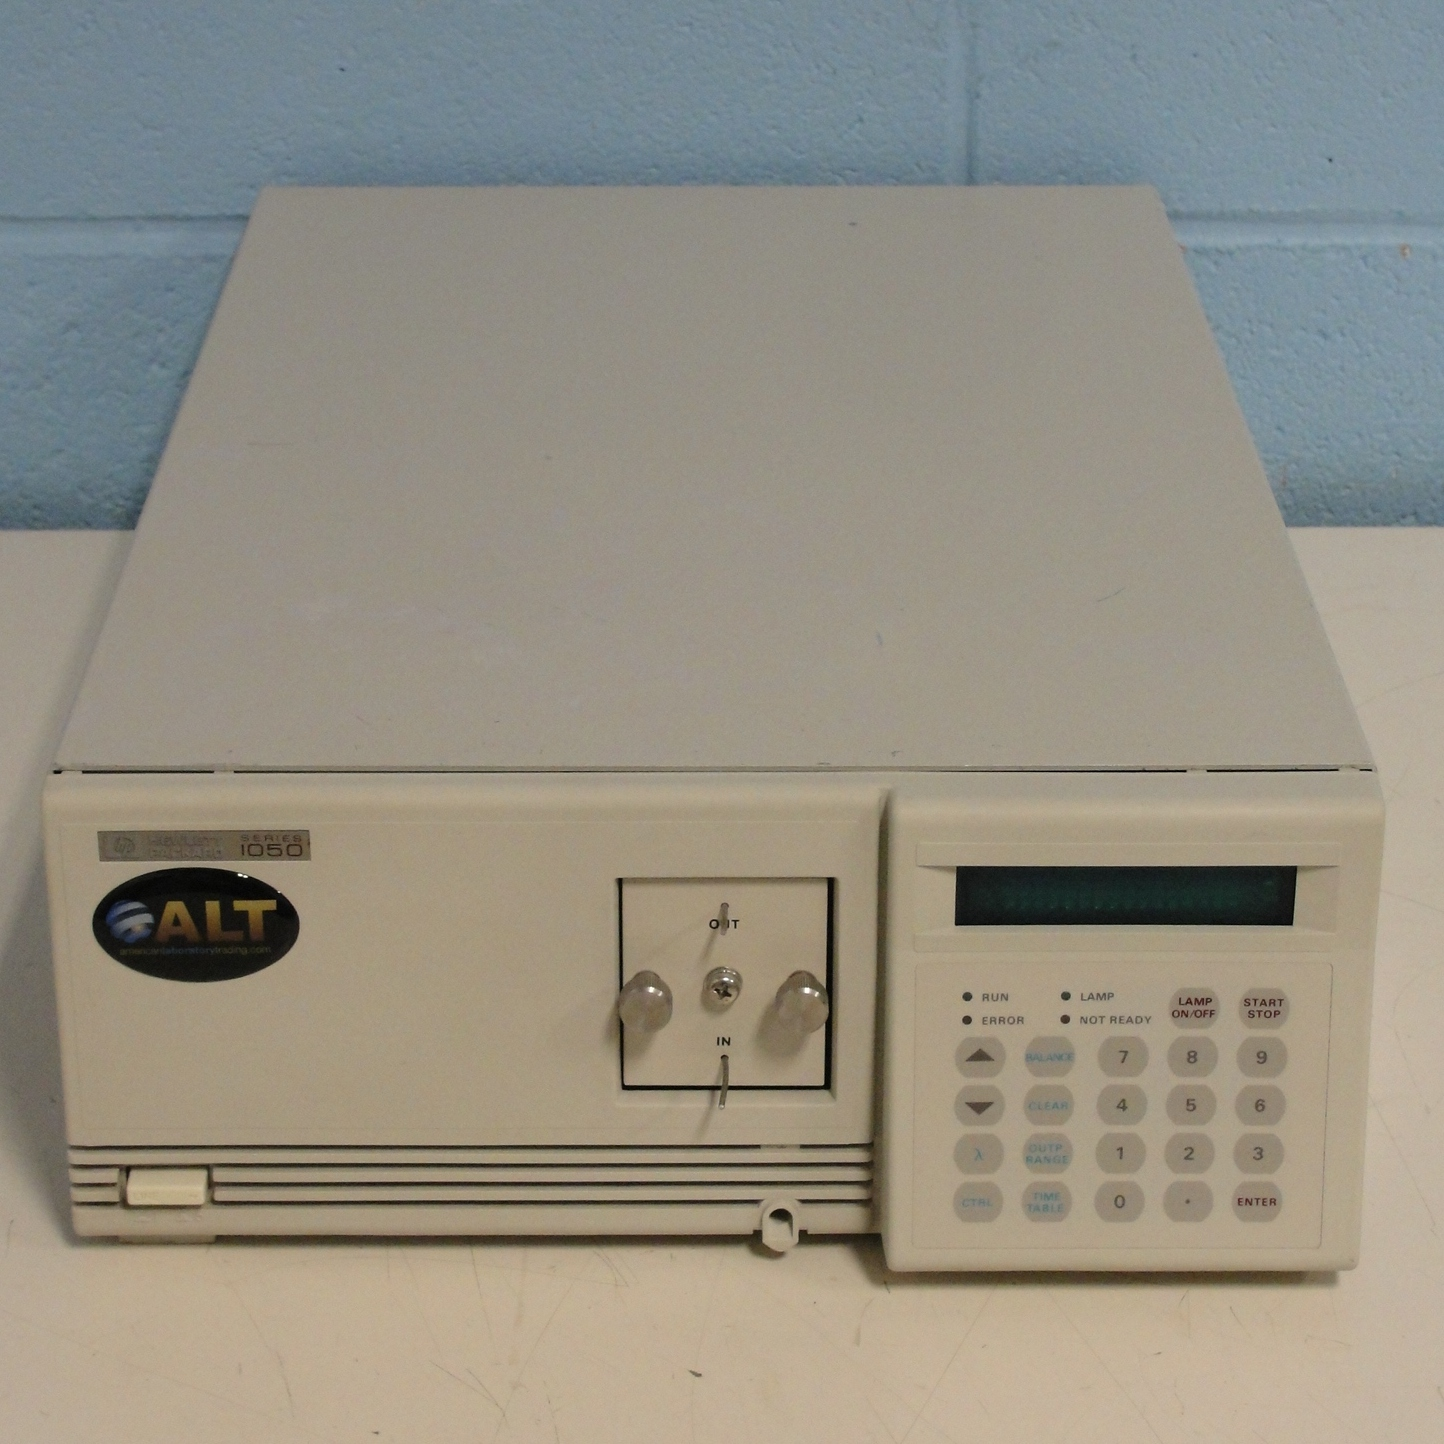 Hewlett Packard VW Detector Model 79853A Image